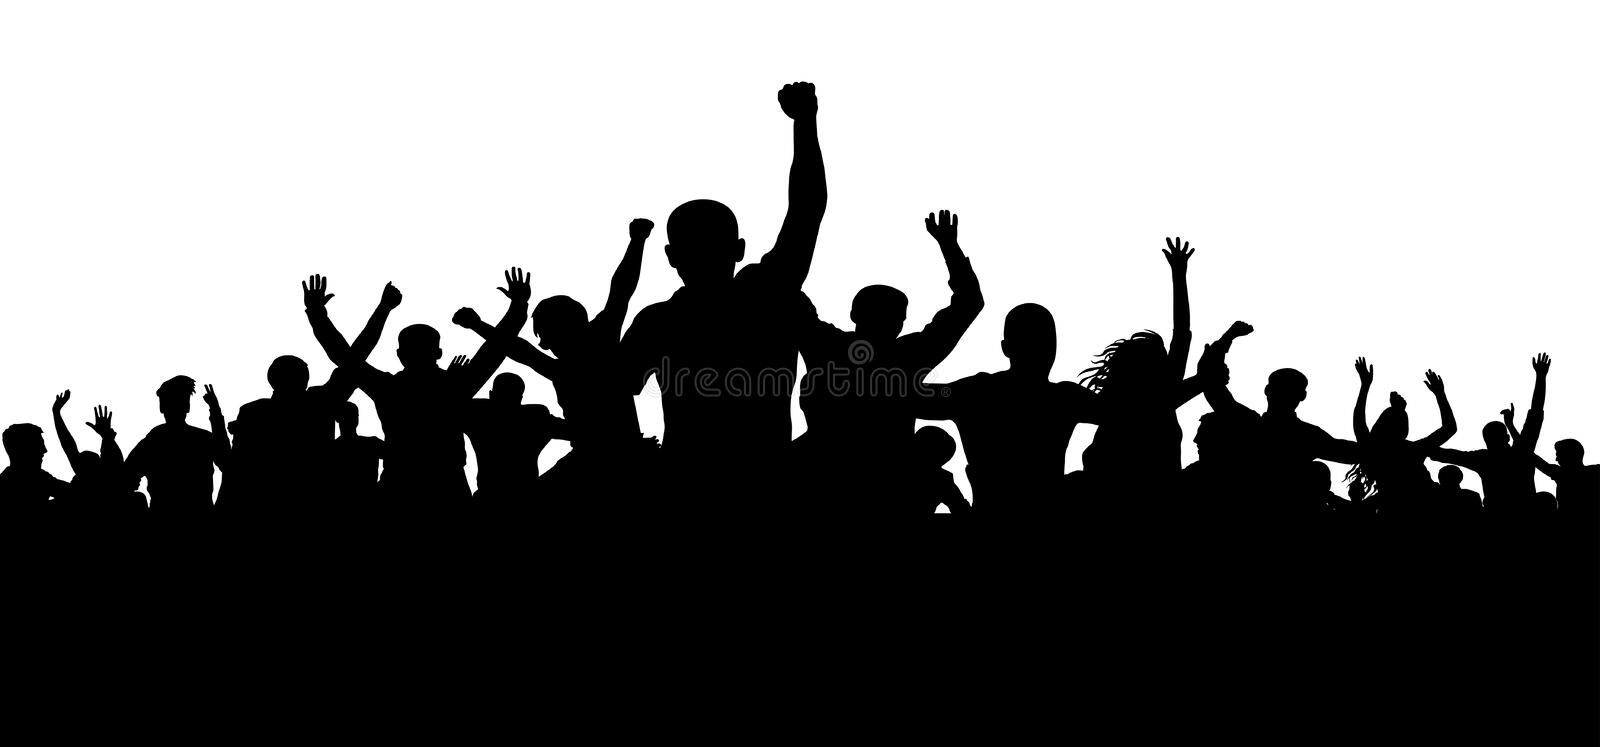 Protesters, enraged crowd of people silhouette vector, angry mob. Protesters, enraged crowd of people silhouette vector, angry mob vector illustration